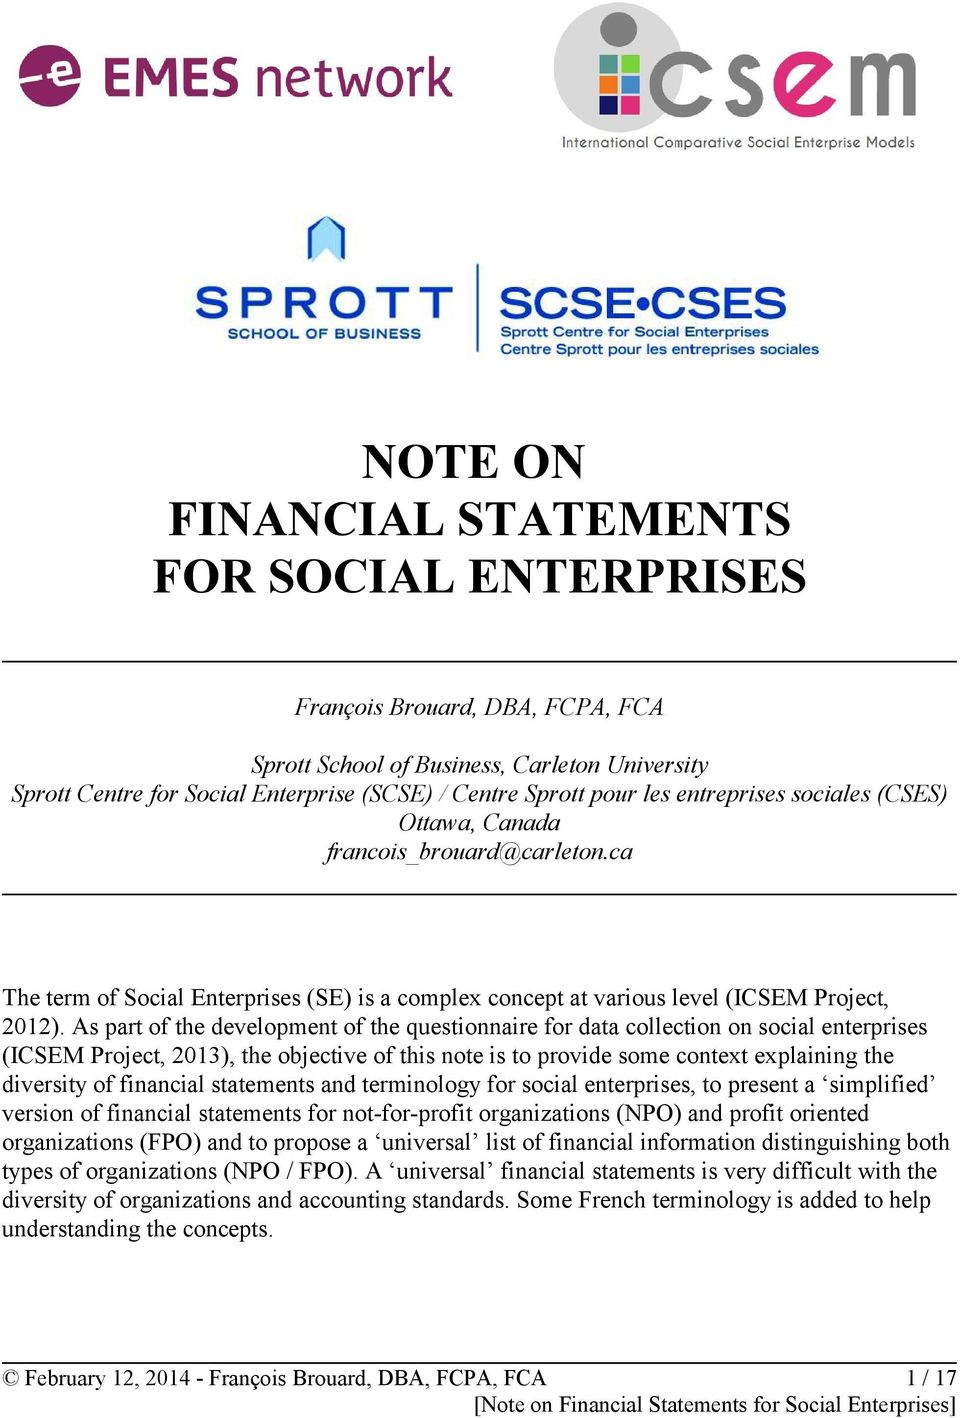 As part of the development of the questionnaire for data collection on social enterprises (ICSEM Project, 2013), the objective of this note is to provide some contet eplaining the diversity of